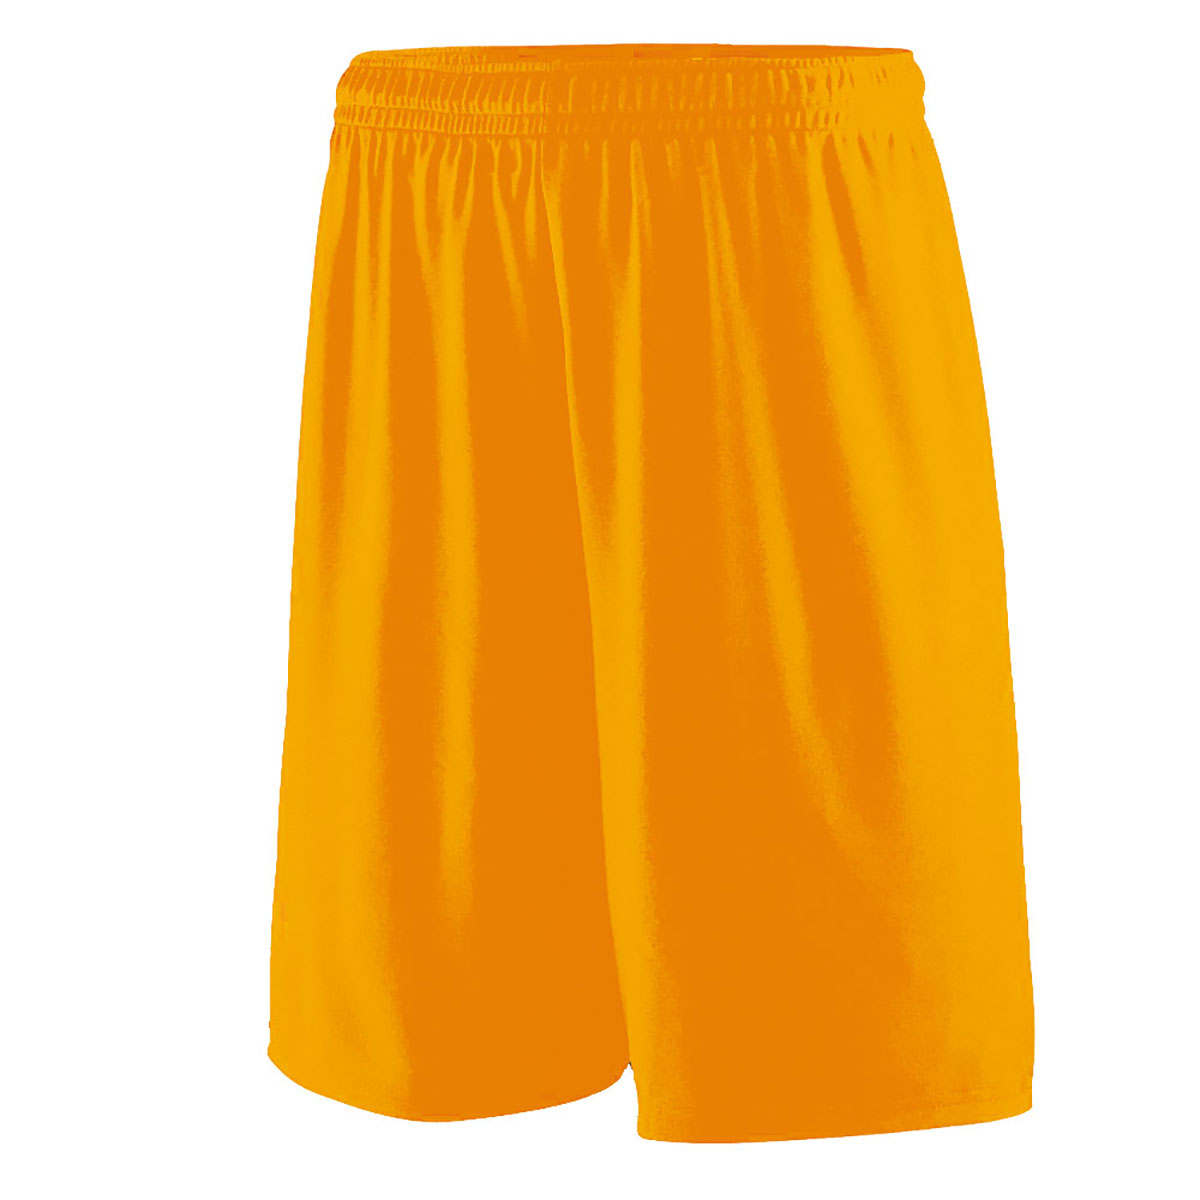 Men's Training Shorts by Augusta